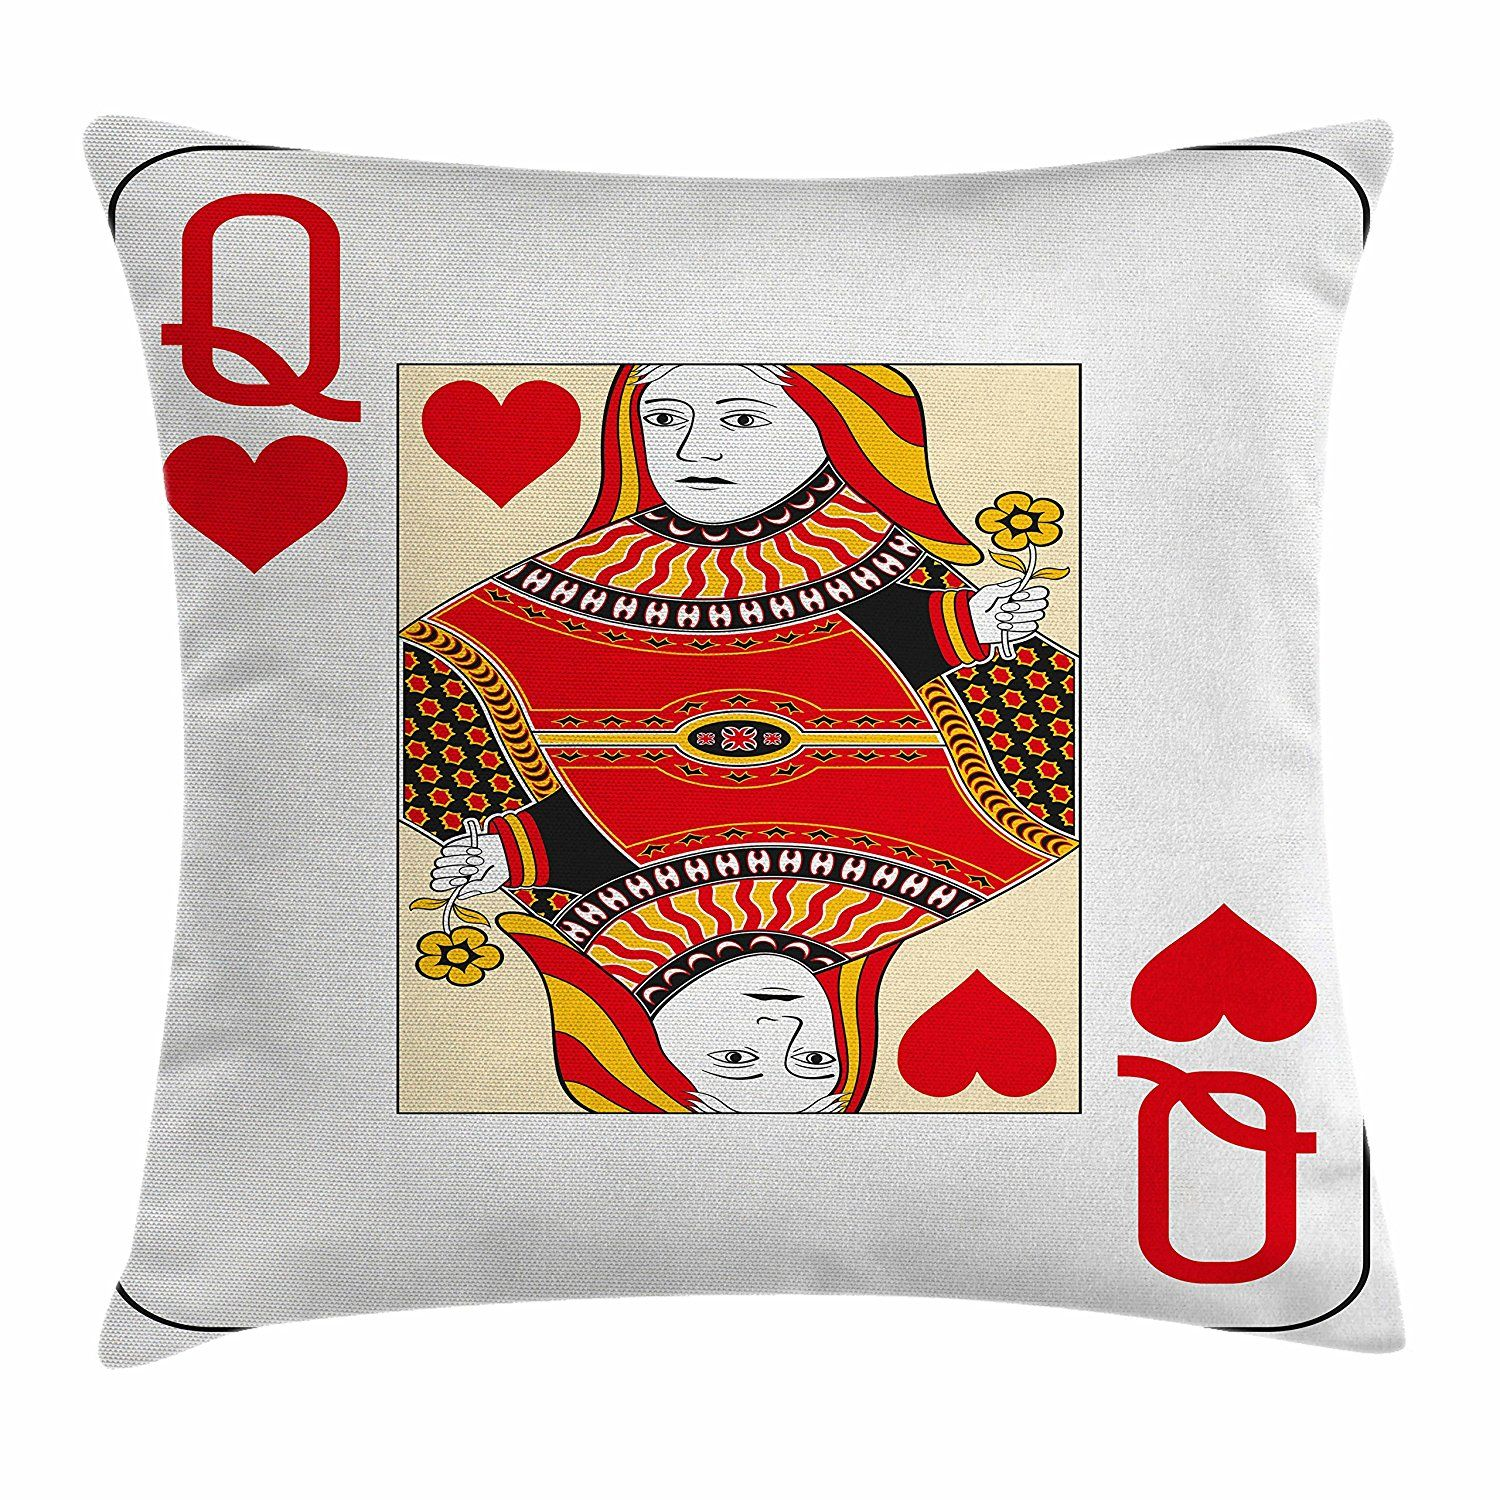 Queen Throw Pillow Cushion Cover by Ambesonne